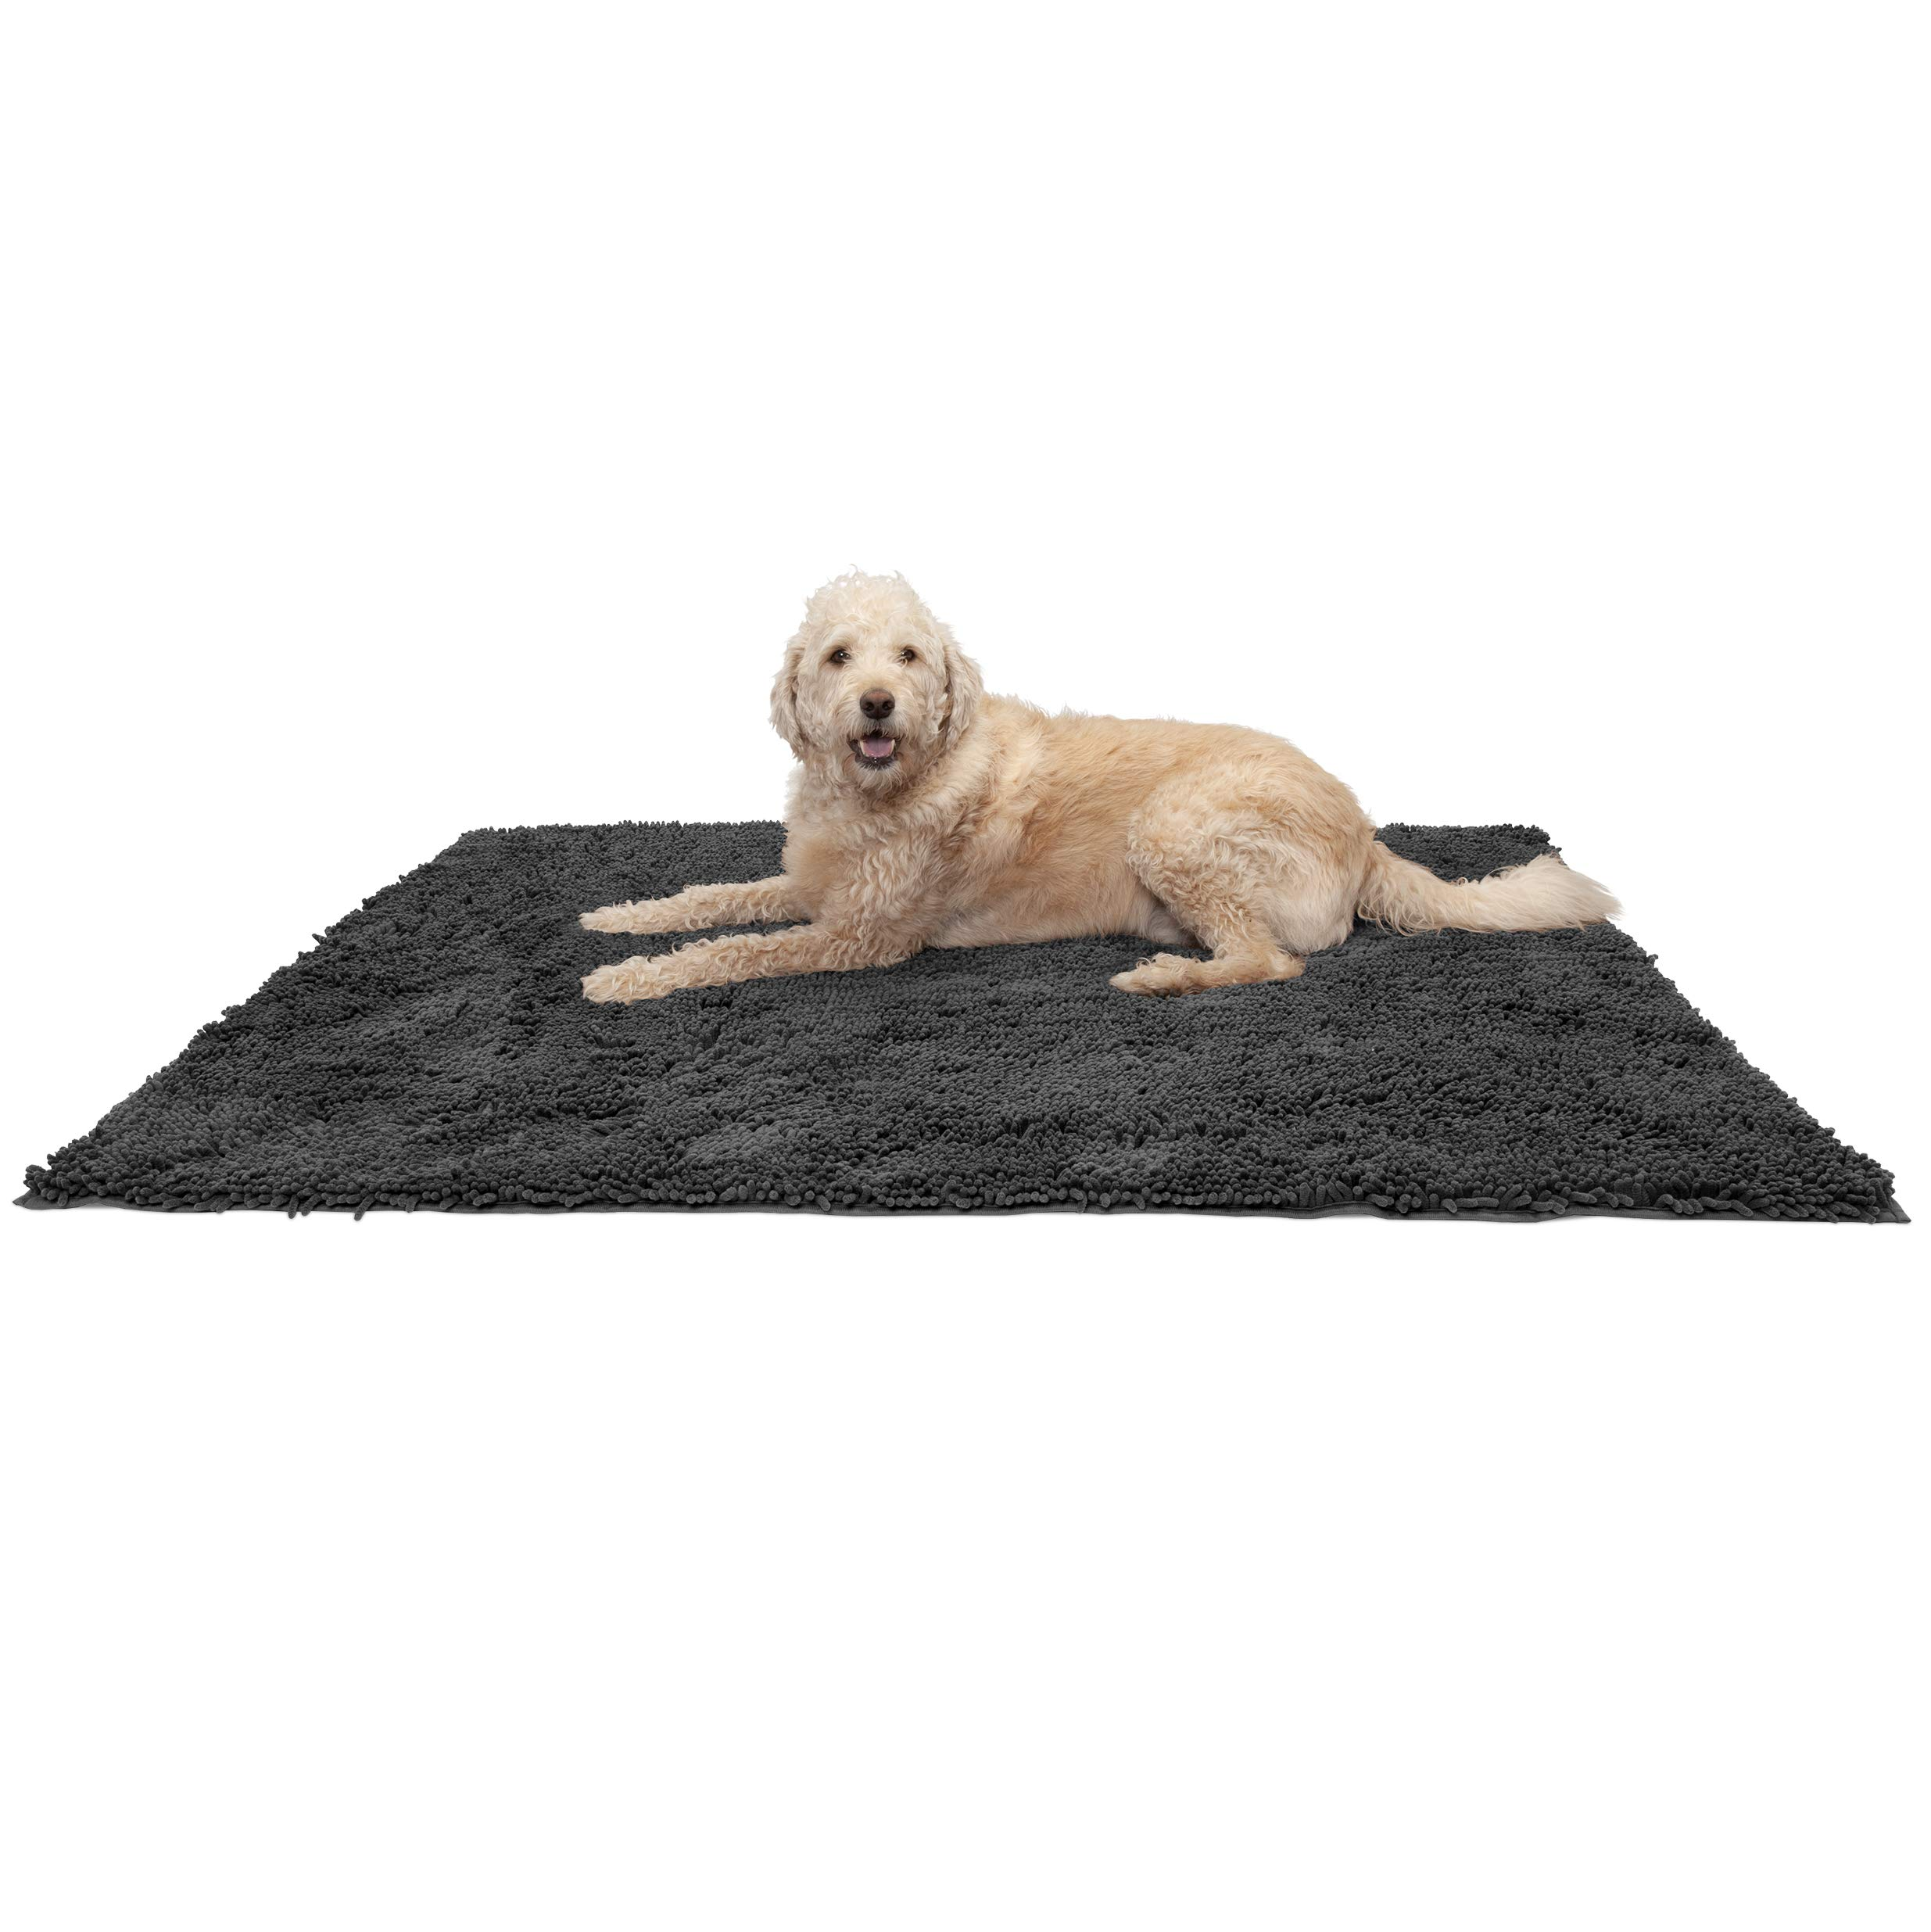 Furhaven Pet Dog Mat | Muddy Paws Absorbent Chenille Bath Towel & Shammy Rug for Dogs & Cats, Charcoal (Gray), Jumbo Plus